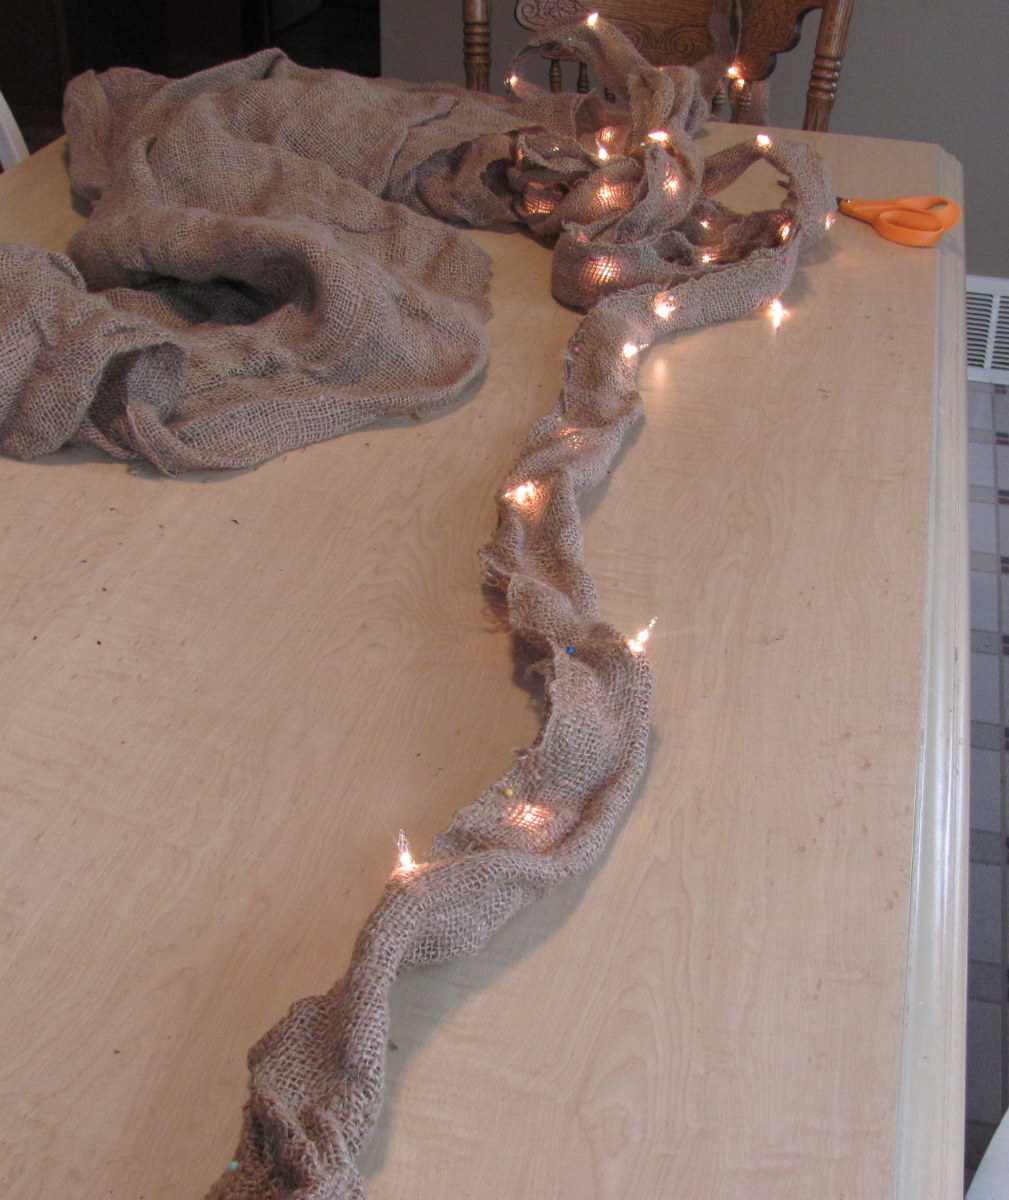 ... burlap with Christmas lights. Just one string of lights, but I had